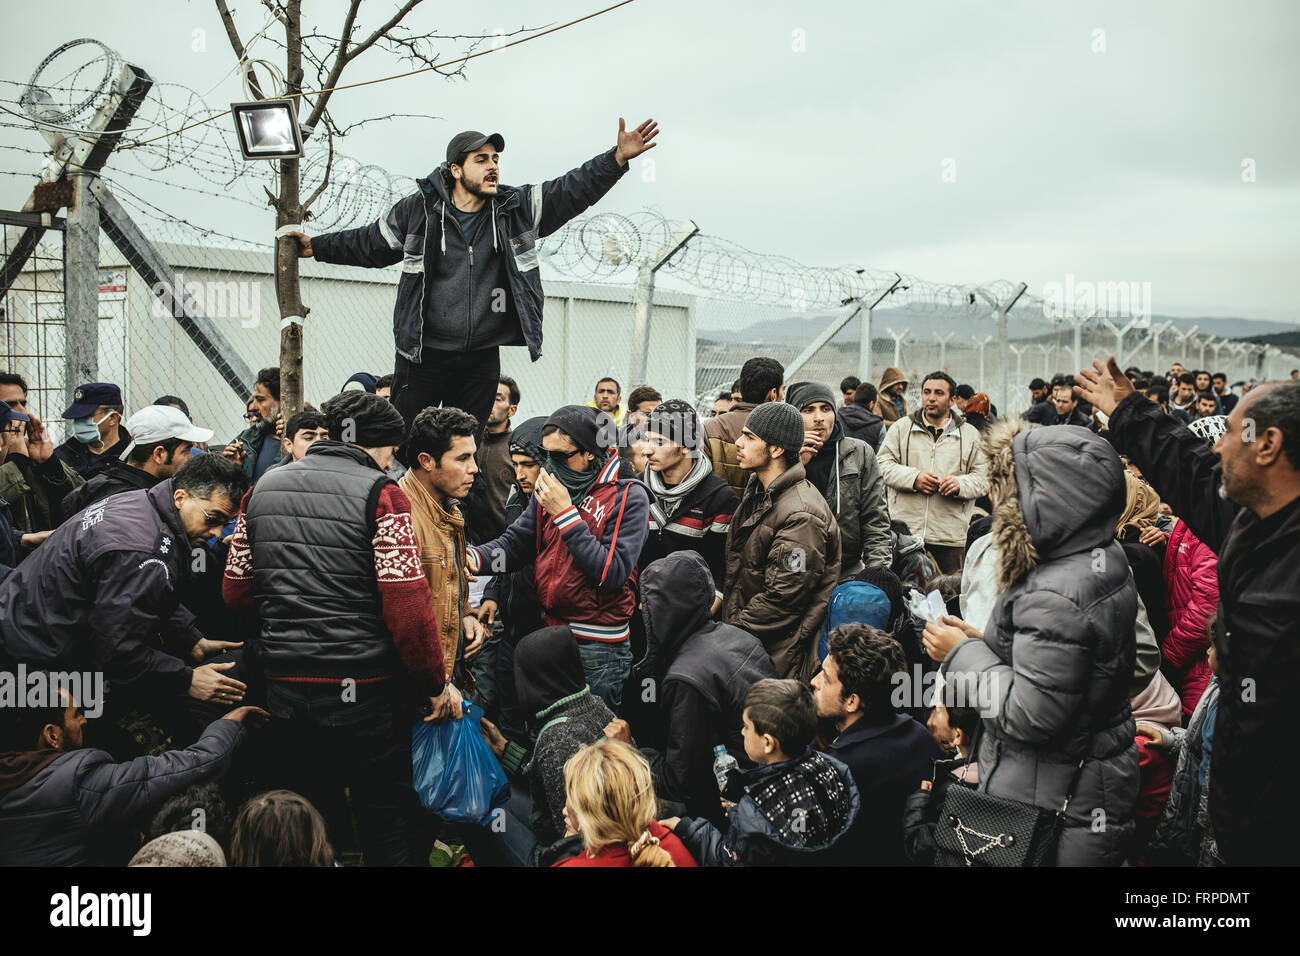 Idomeni refugee camp on the Greece Macedonia border, refugees waiting at a checkpoint, a man translates the official - Stock Image